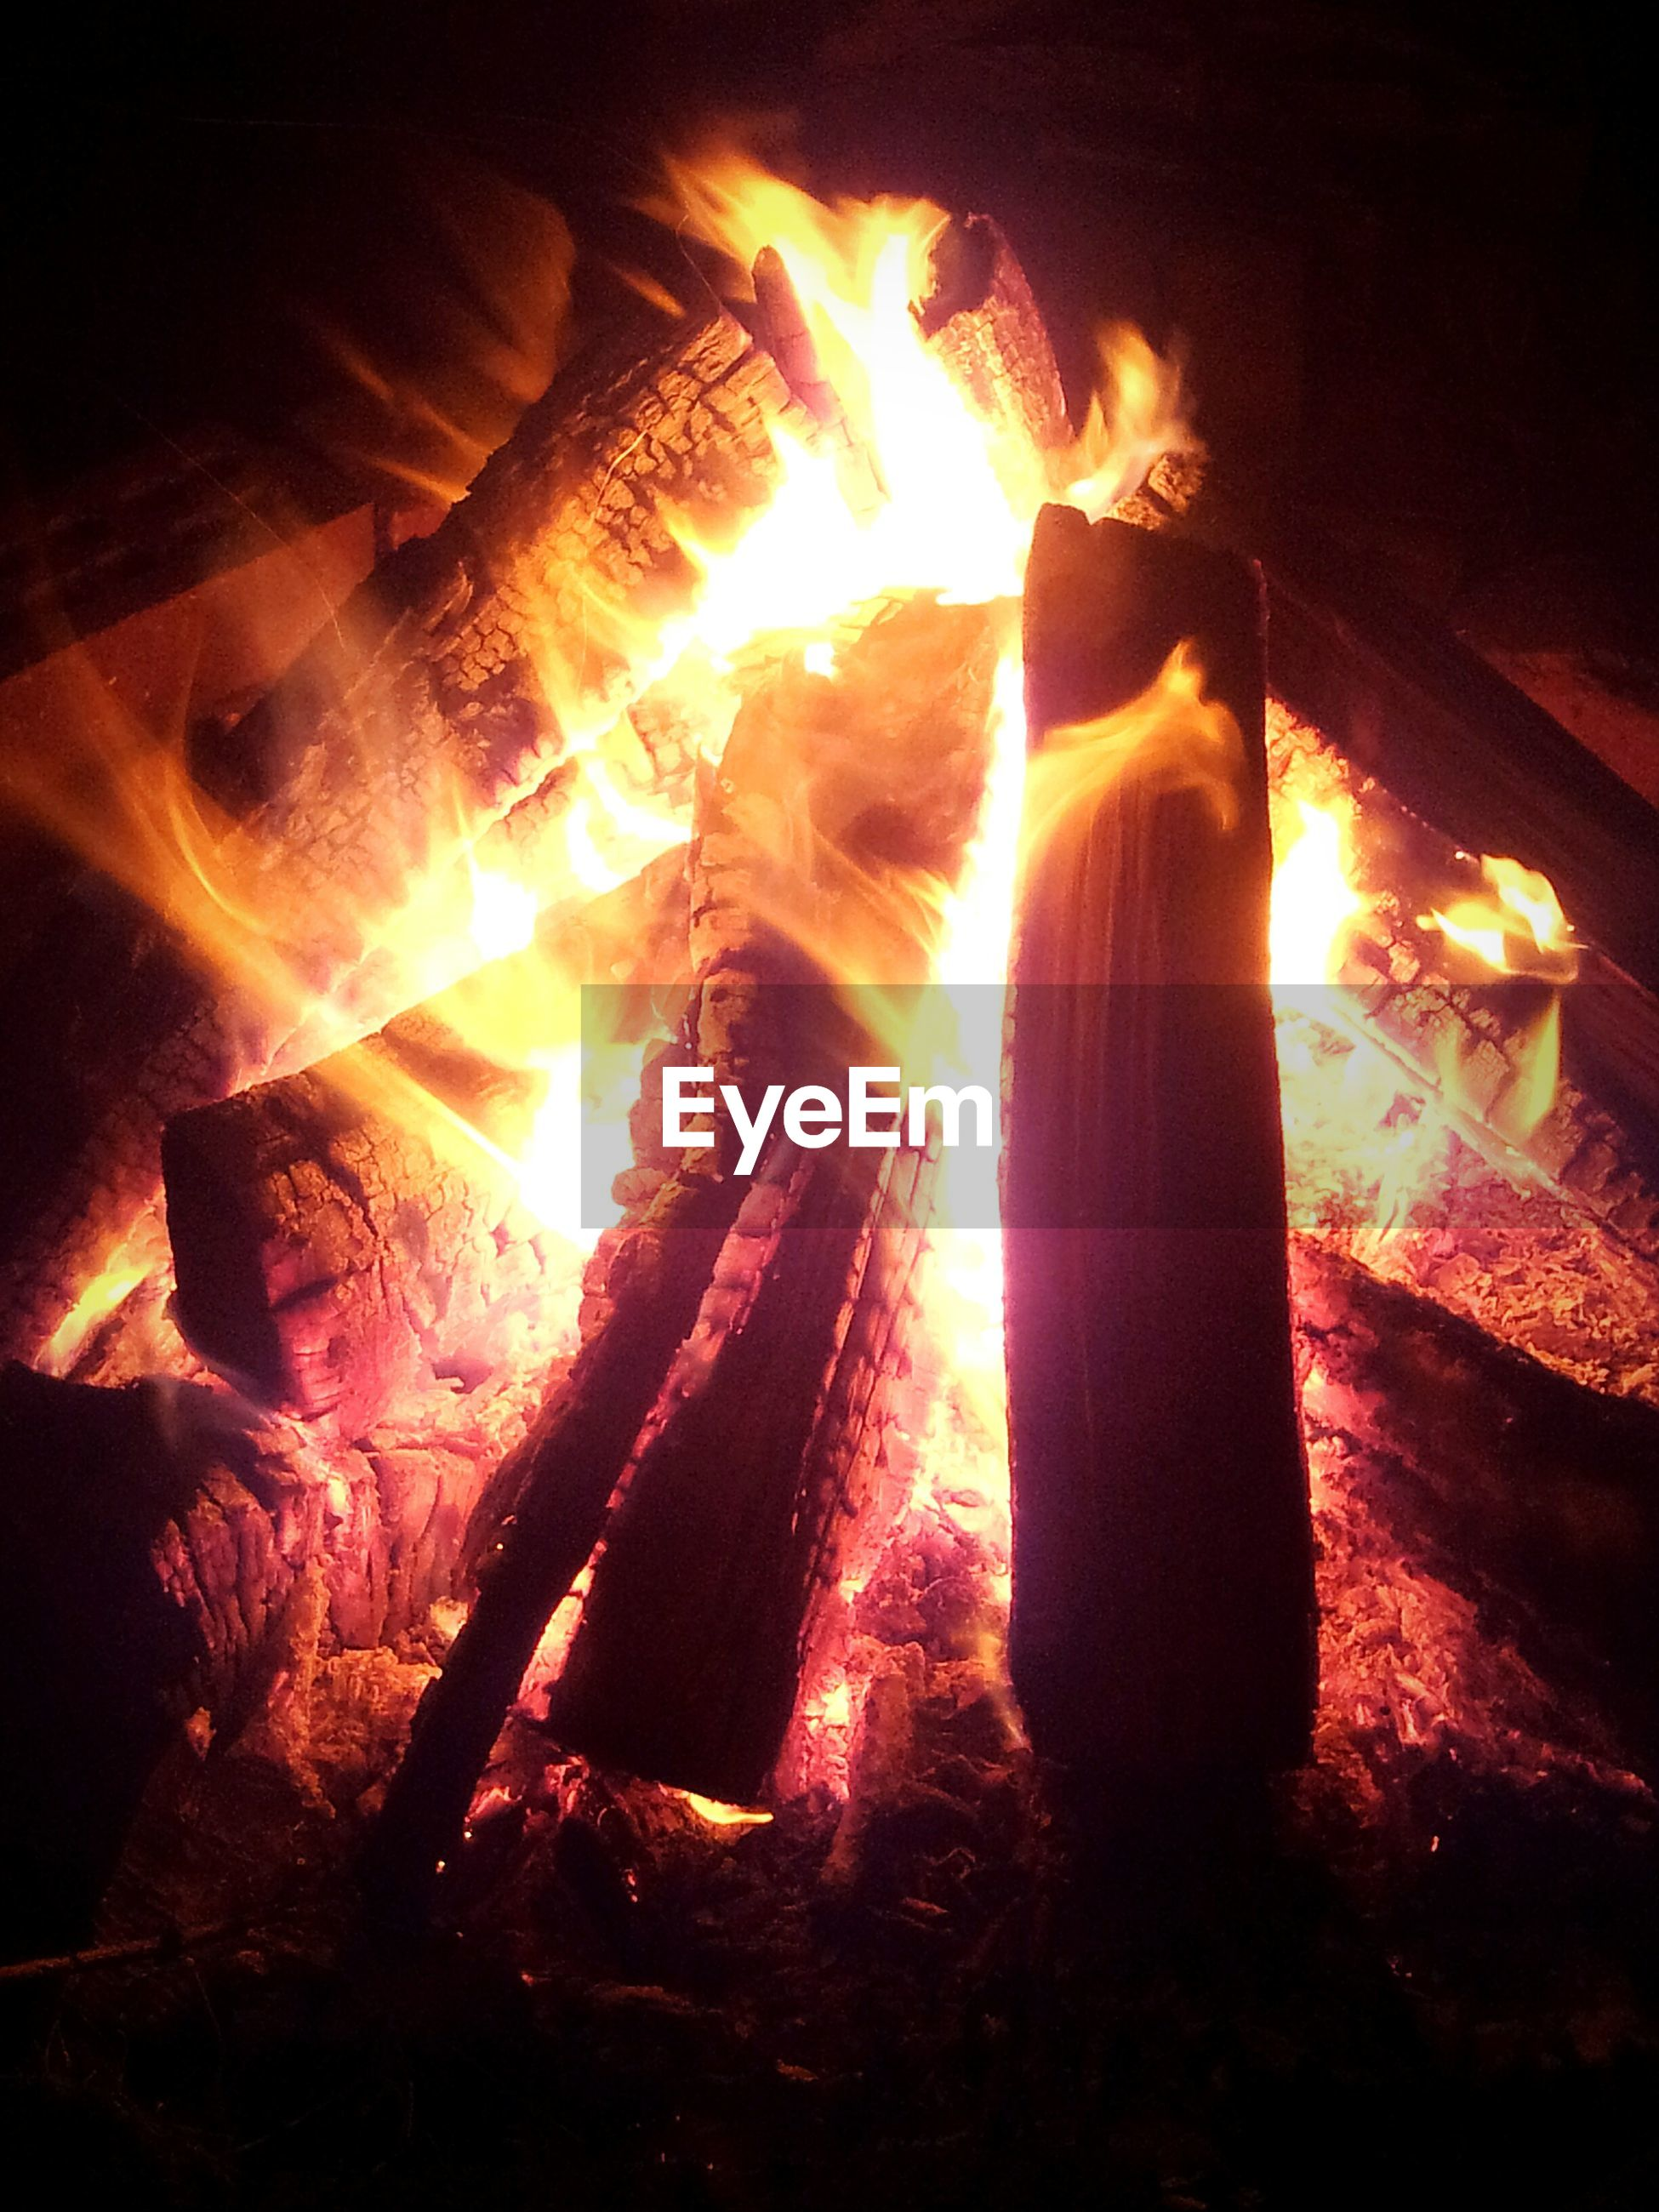 burning, flame, fire - natural phenomenon, heat - temperature, glowing, night, indoors, illuminated, bonfire, fire, candle, firewood, close-up, heat, campfire, light - natural phenomenon, lit, dark, wood - material, fireplace